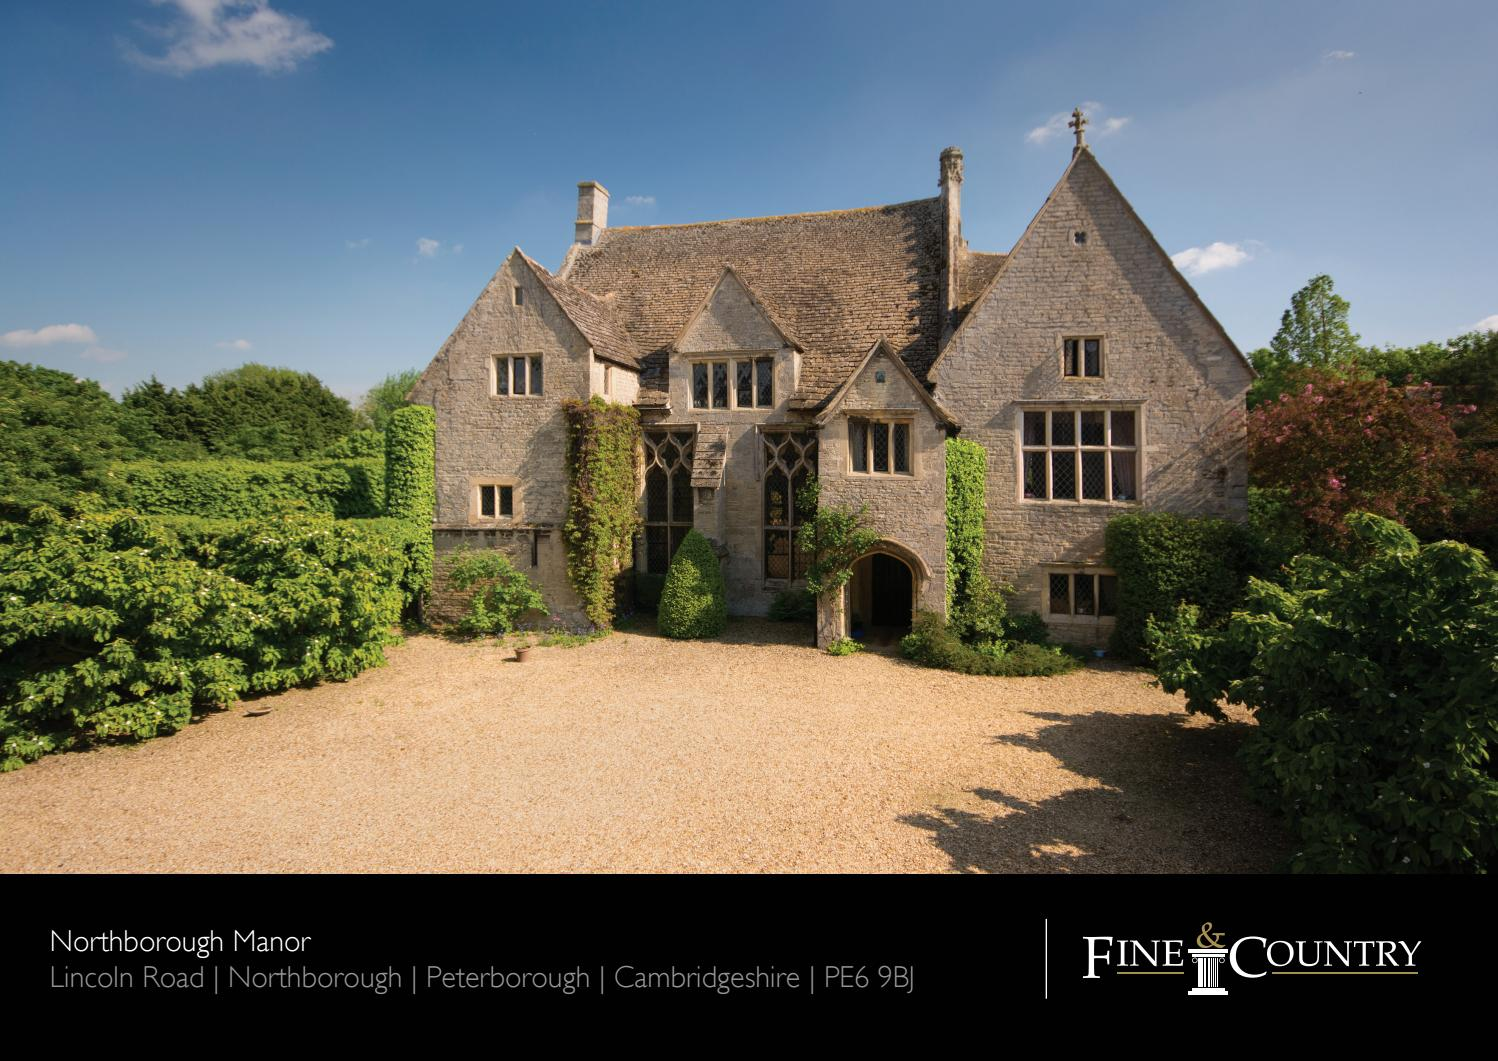 Eight bedroom main manor and a separate four bedroom gatehouse - Northborough Manor Peterborough Cambridgeshire By Fine Country Issuu